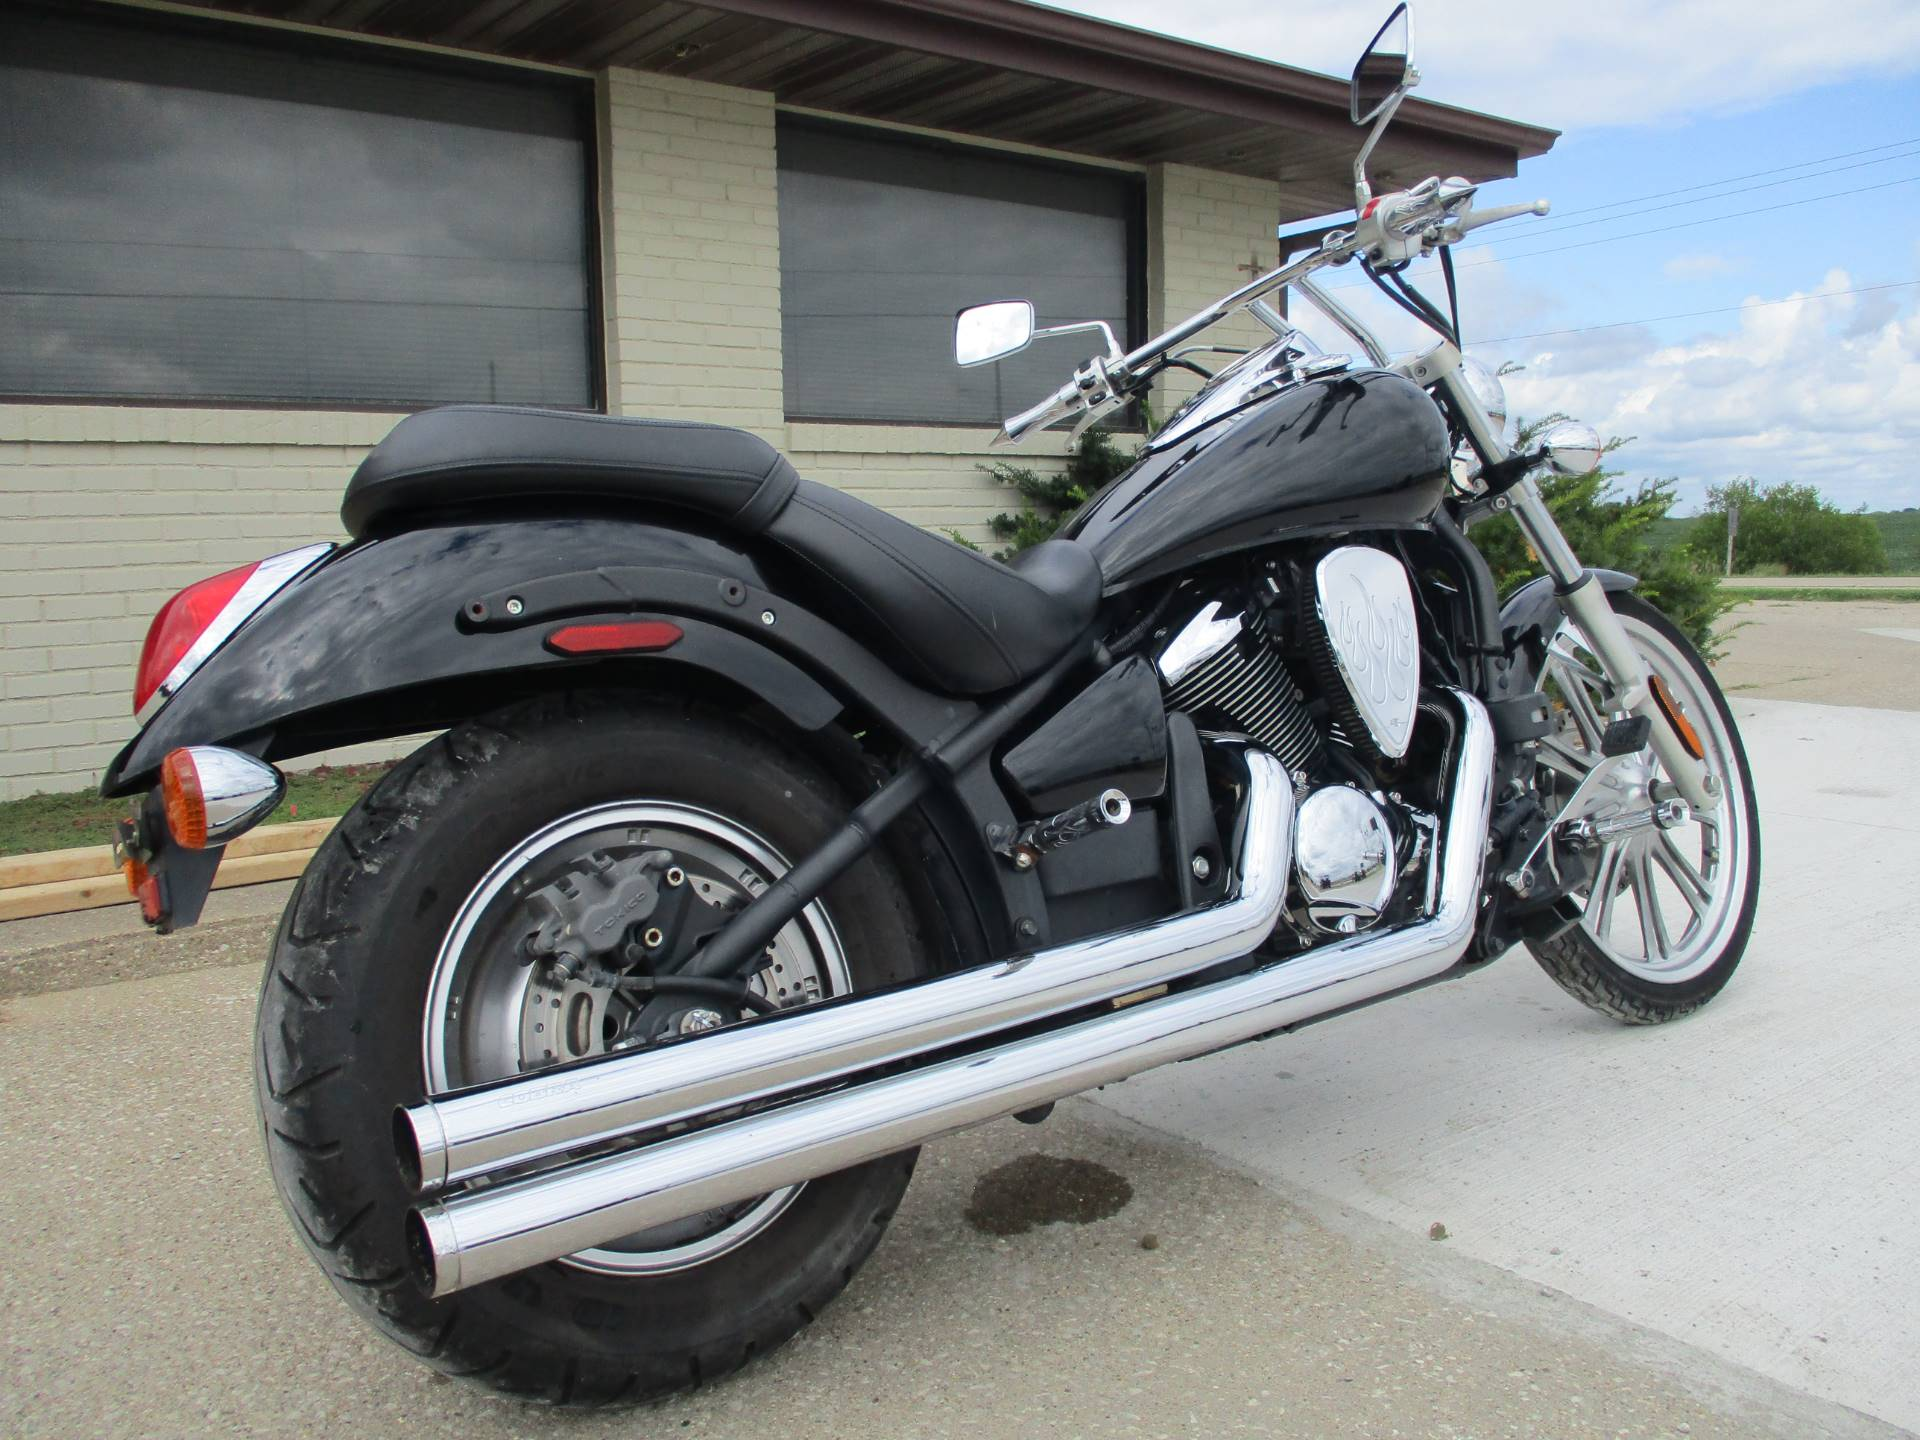 2008 Kawasaki Vulcan® 900 Custom in Winterset, Iowa - Photo 5